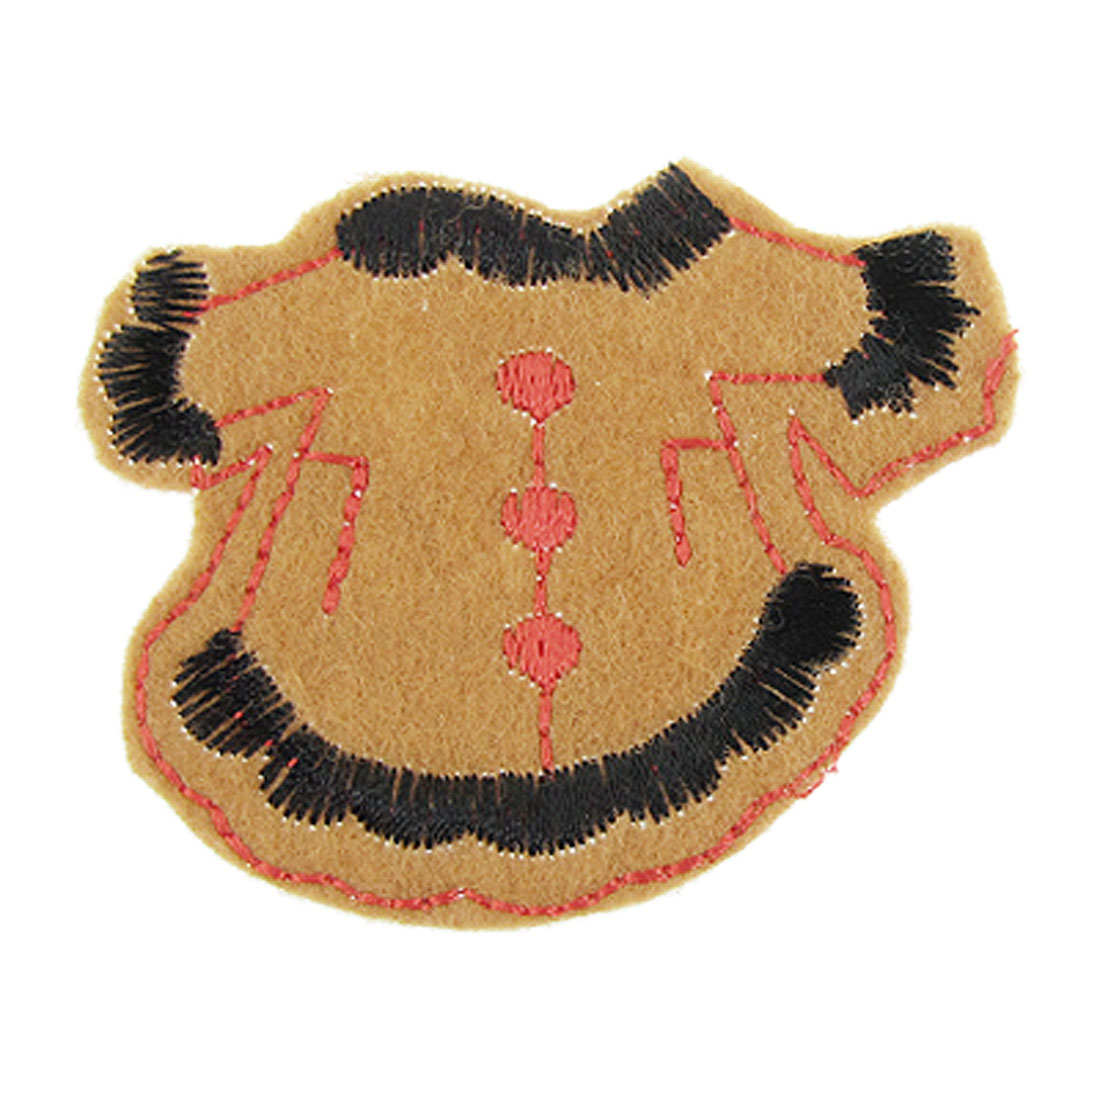 Brown Clothes Shaped Design DIY Embroidery Fabric Applique Patch